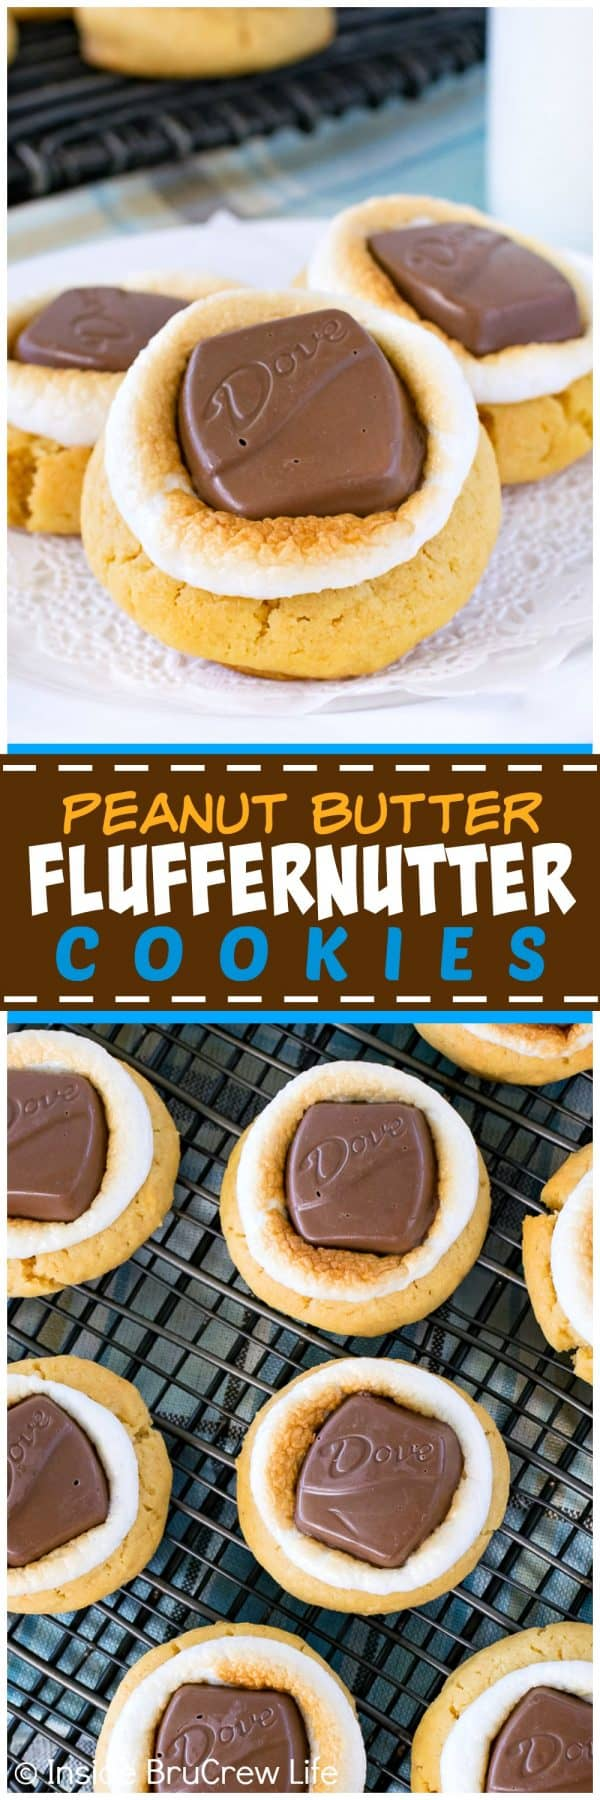 Peanut Butter Fluffernutter Cookies - soft peanut butter cookies topped with toasted marshmallows and peanut butter candy bars makes a great snack to go with milk. Easy recipe for after school or cookie jars!